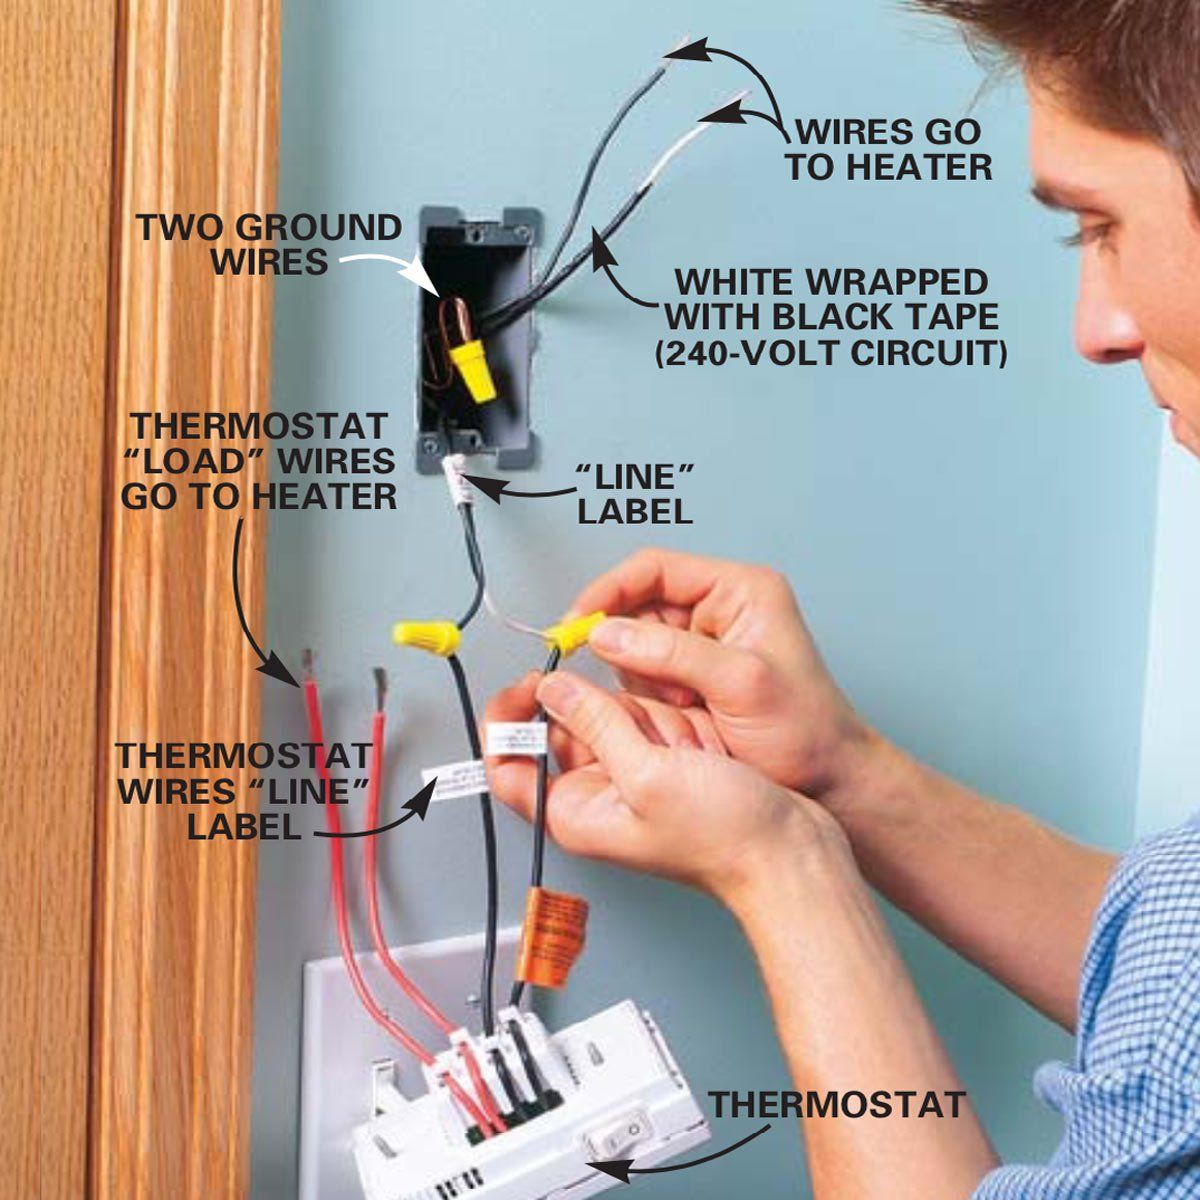 How To Install Electric Heaters Baseboard heater, Heater